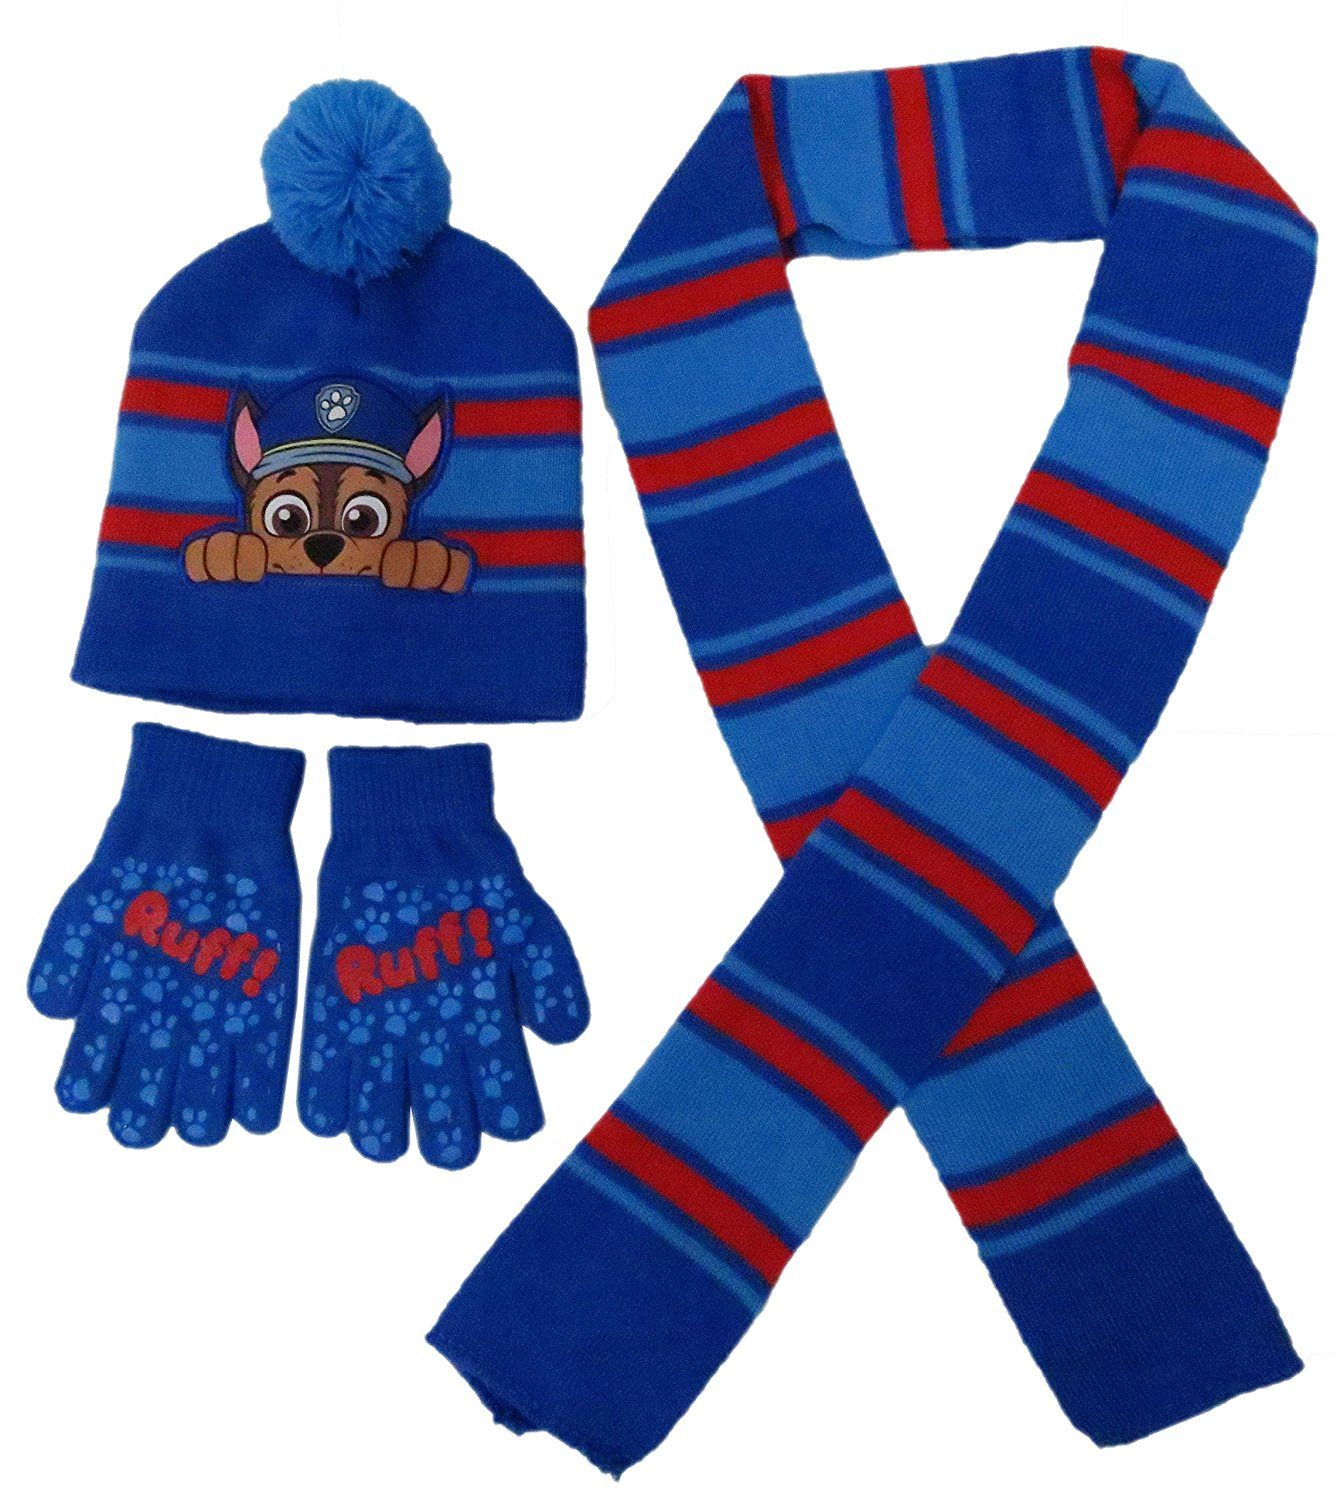 ce512436d Amazon.com: Nickelodeon Paw Patrol Chase Hat Scarf and Glove Set ...